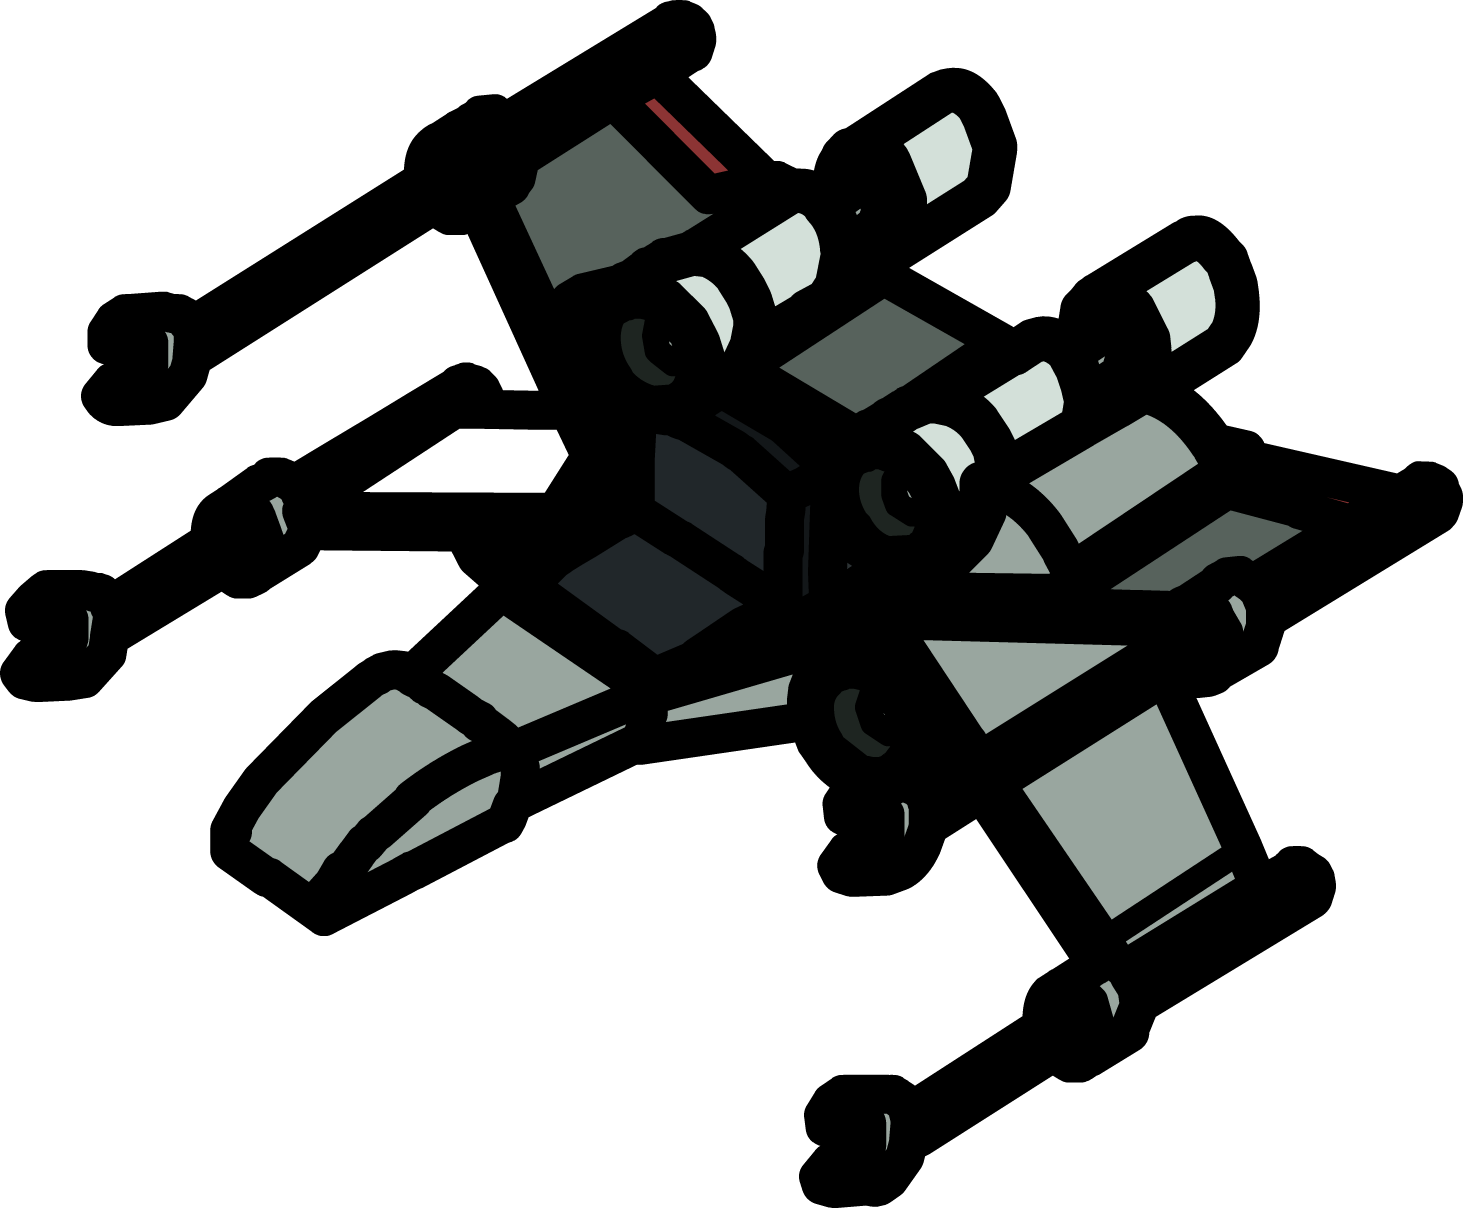 Star wars x wing clipart svg black and white X-wing Fighter Chair | Club Penguin Wiki | FANDOM powered by Wikia svg black and white